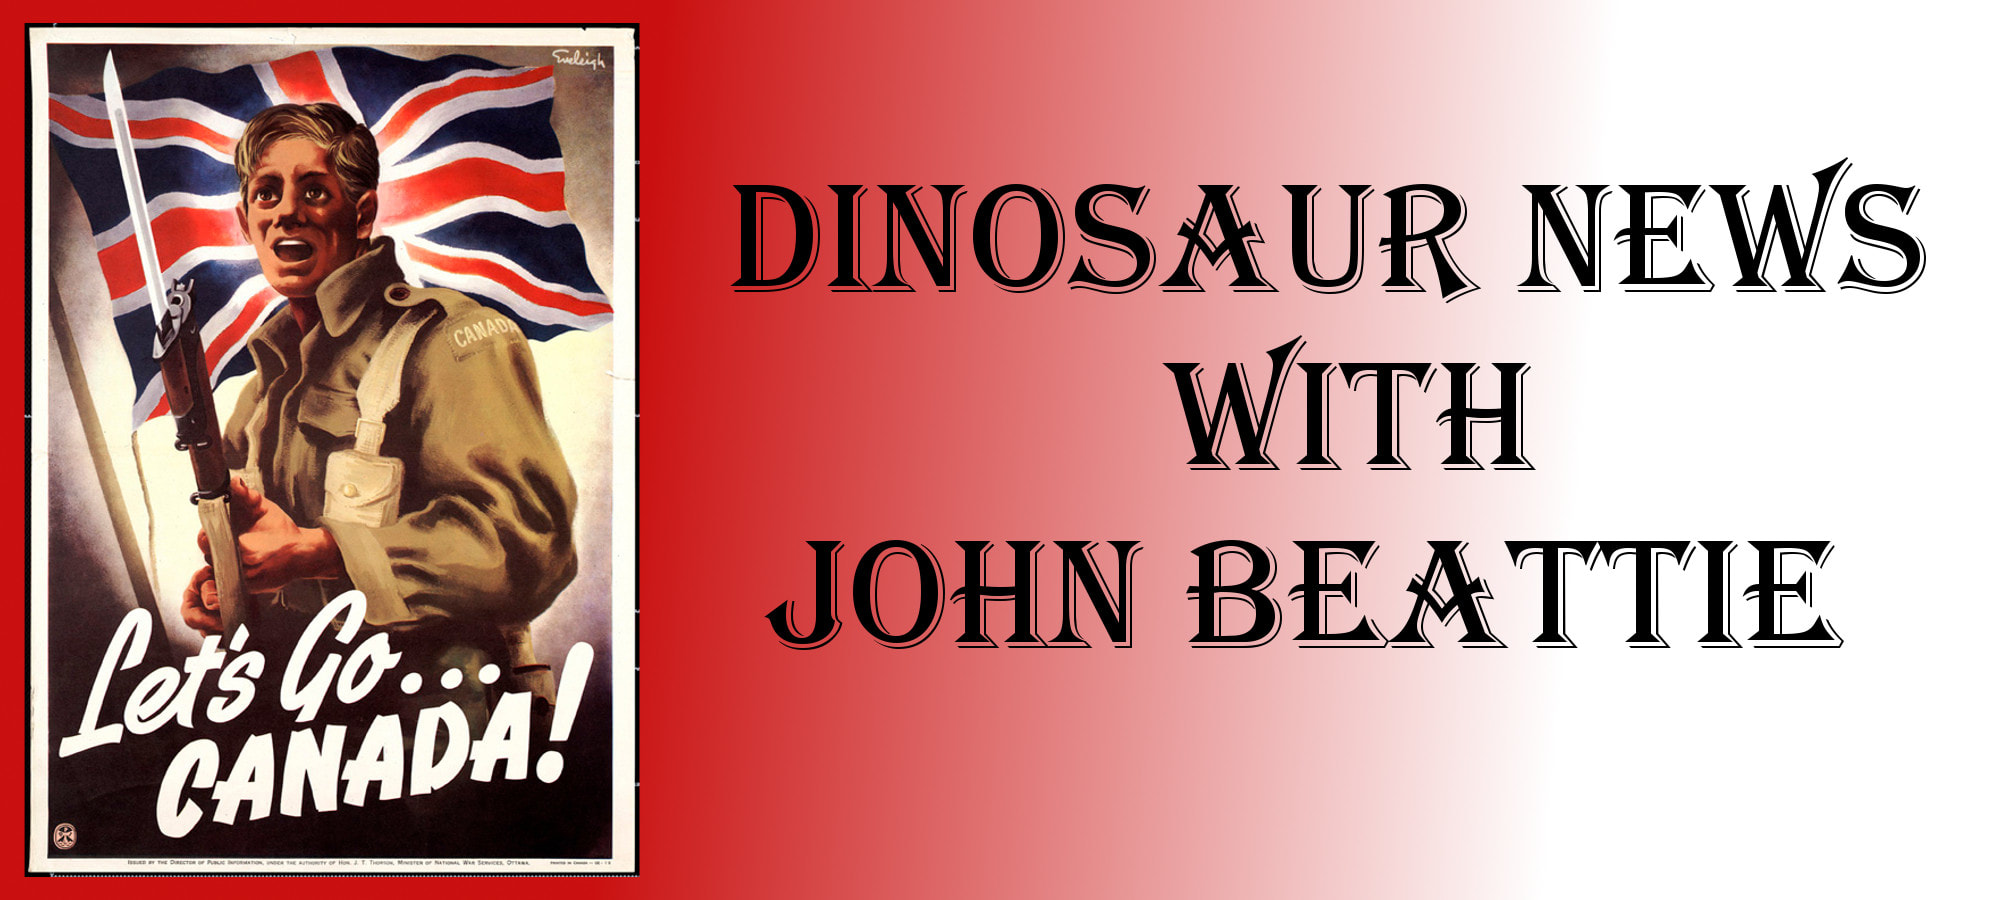 Dinosaur News with John Beattie